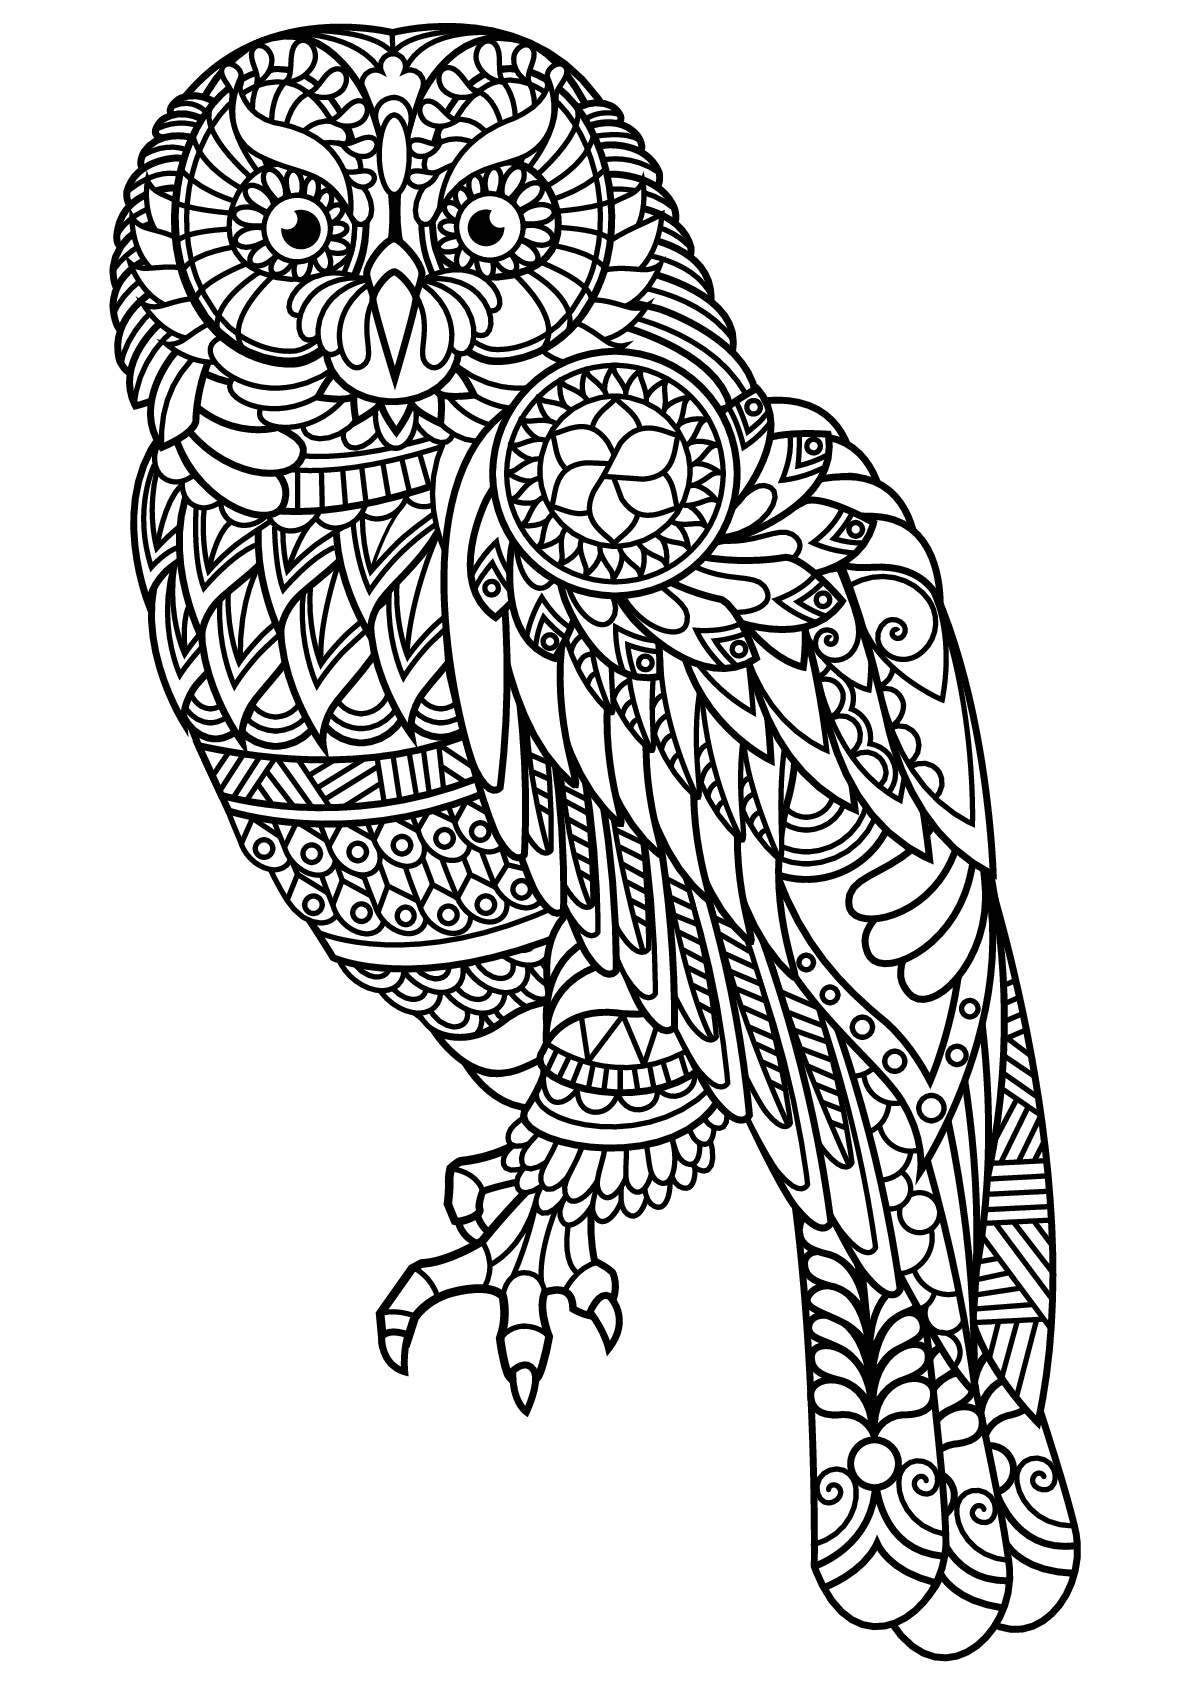 art pictures to color free book owl owls adult coloring pages art pictures to color